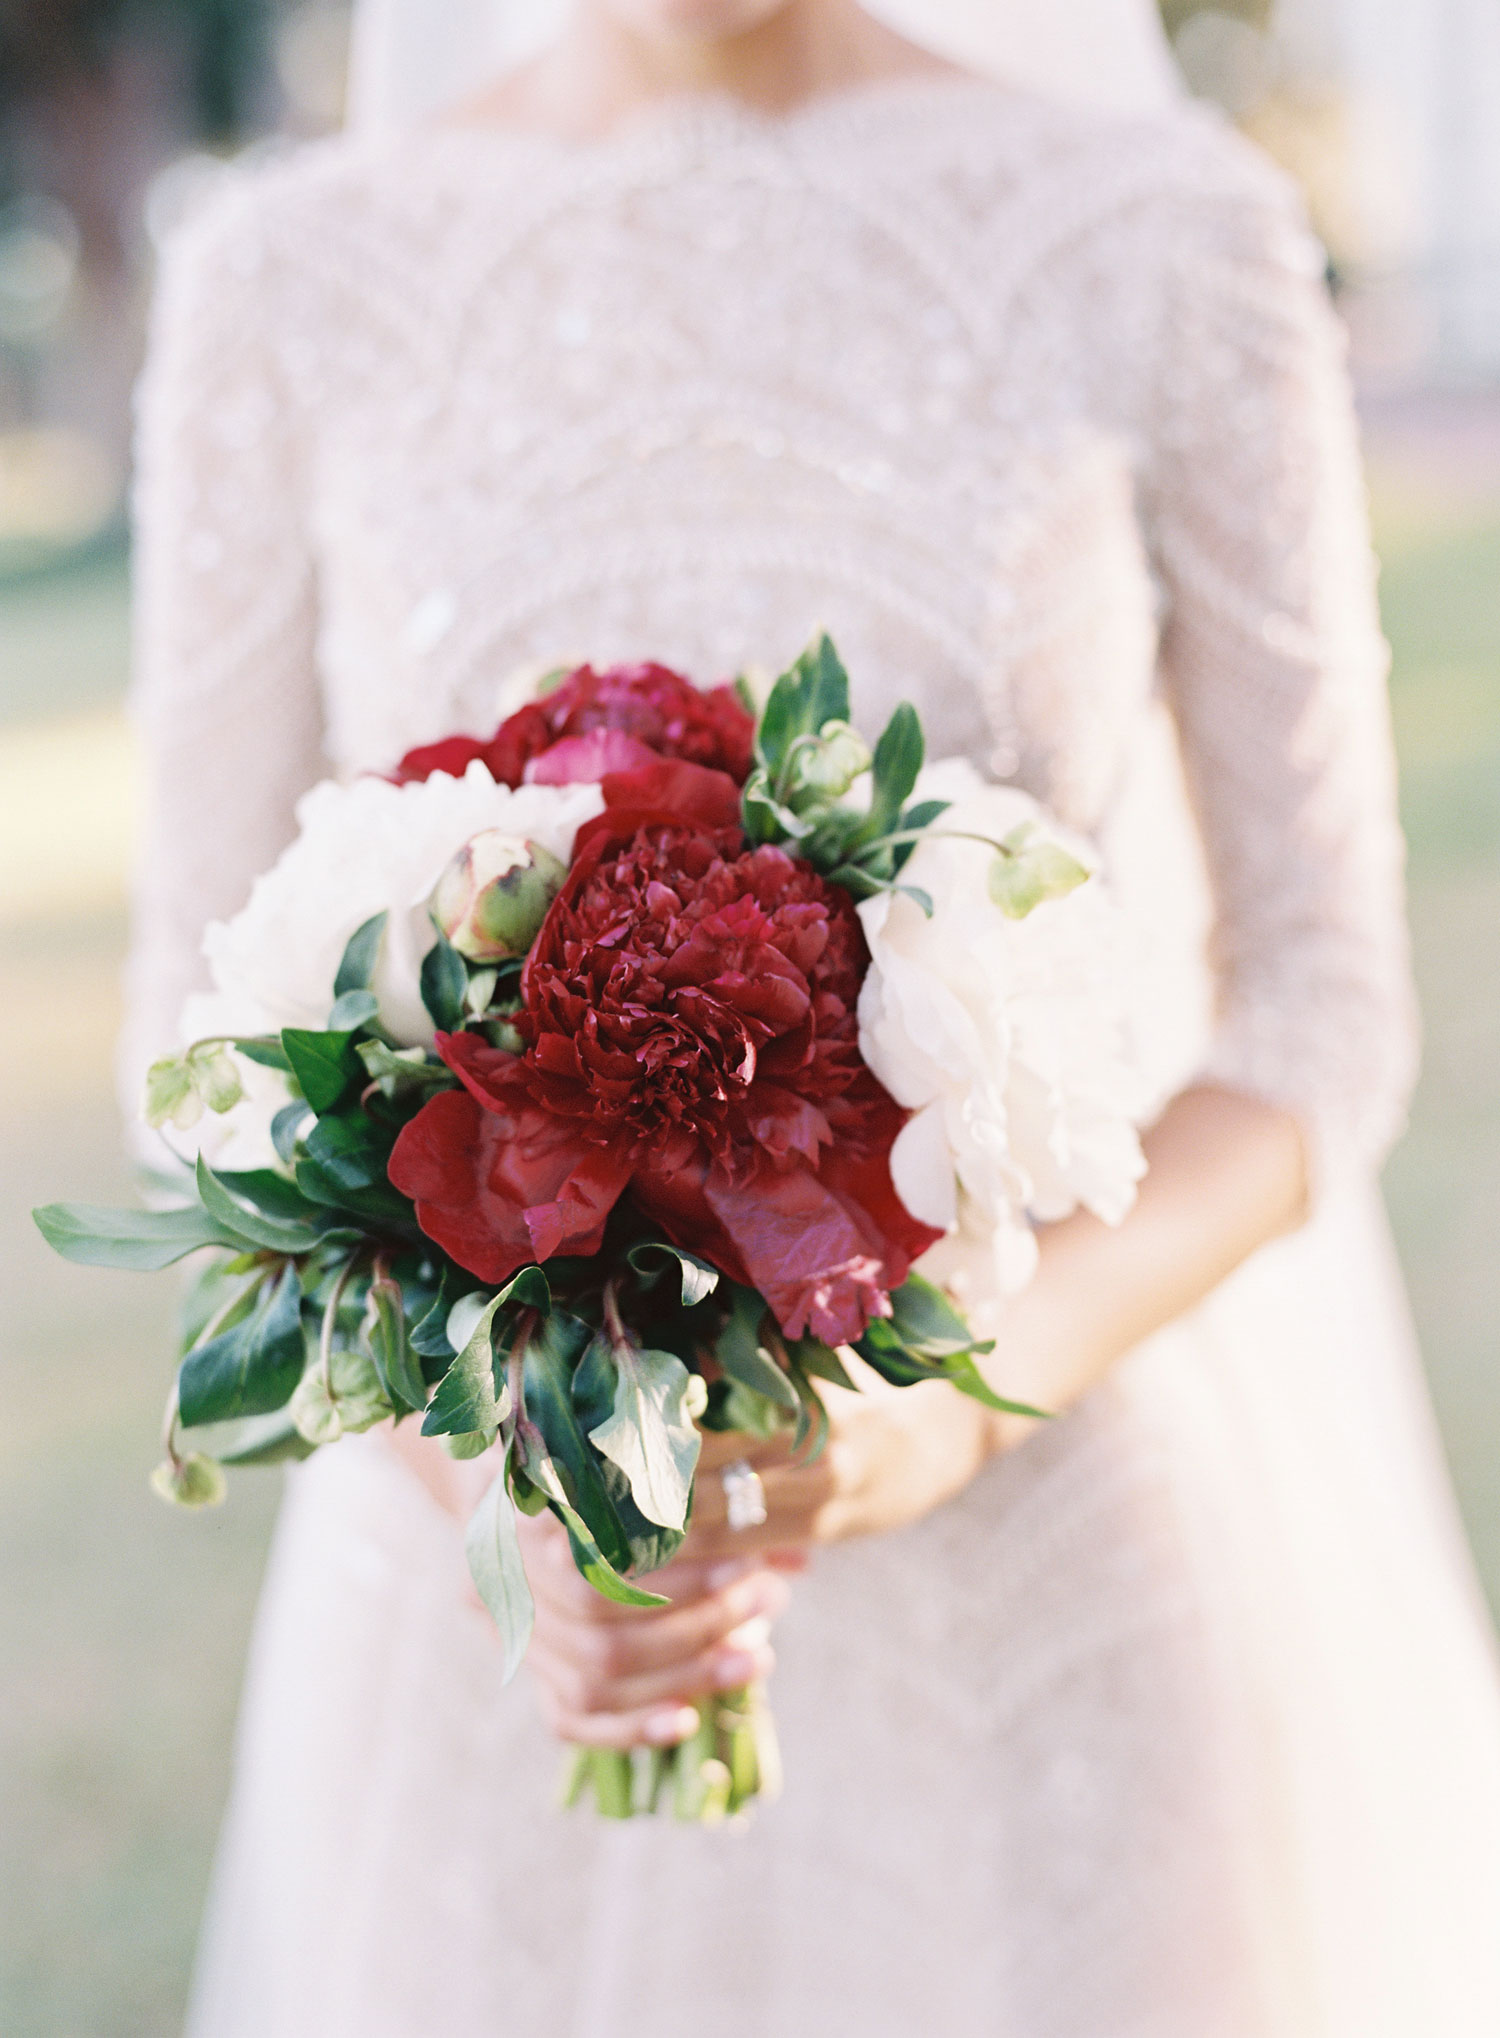 Fall Wedding Bouquets For Festive Autumn Celebrations